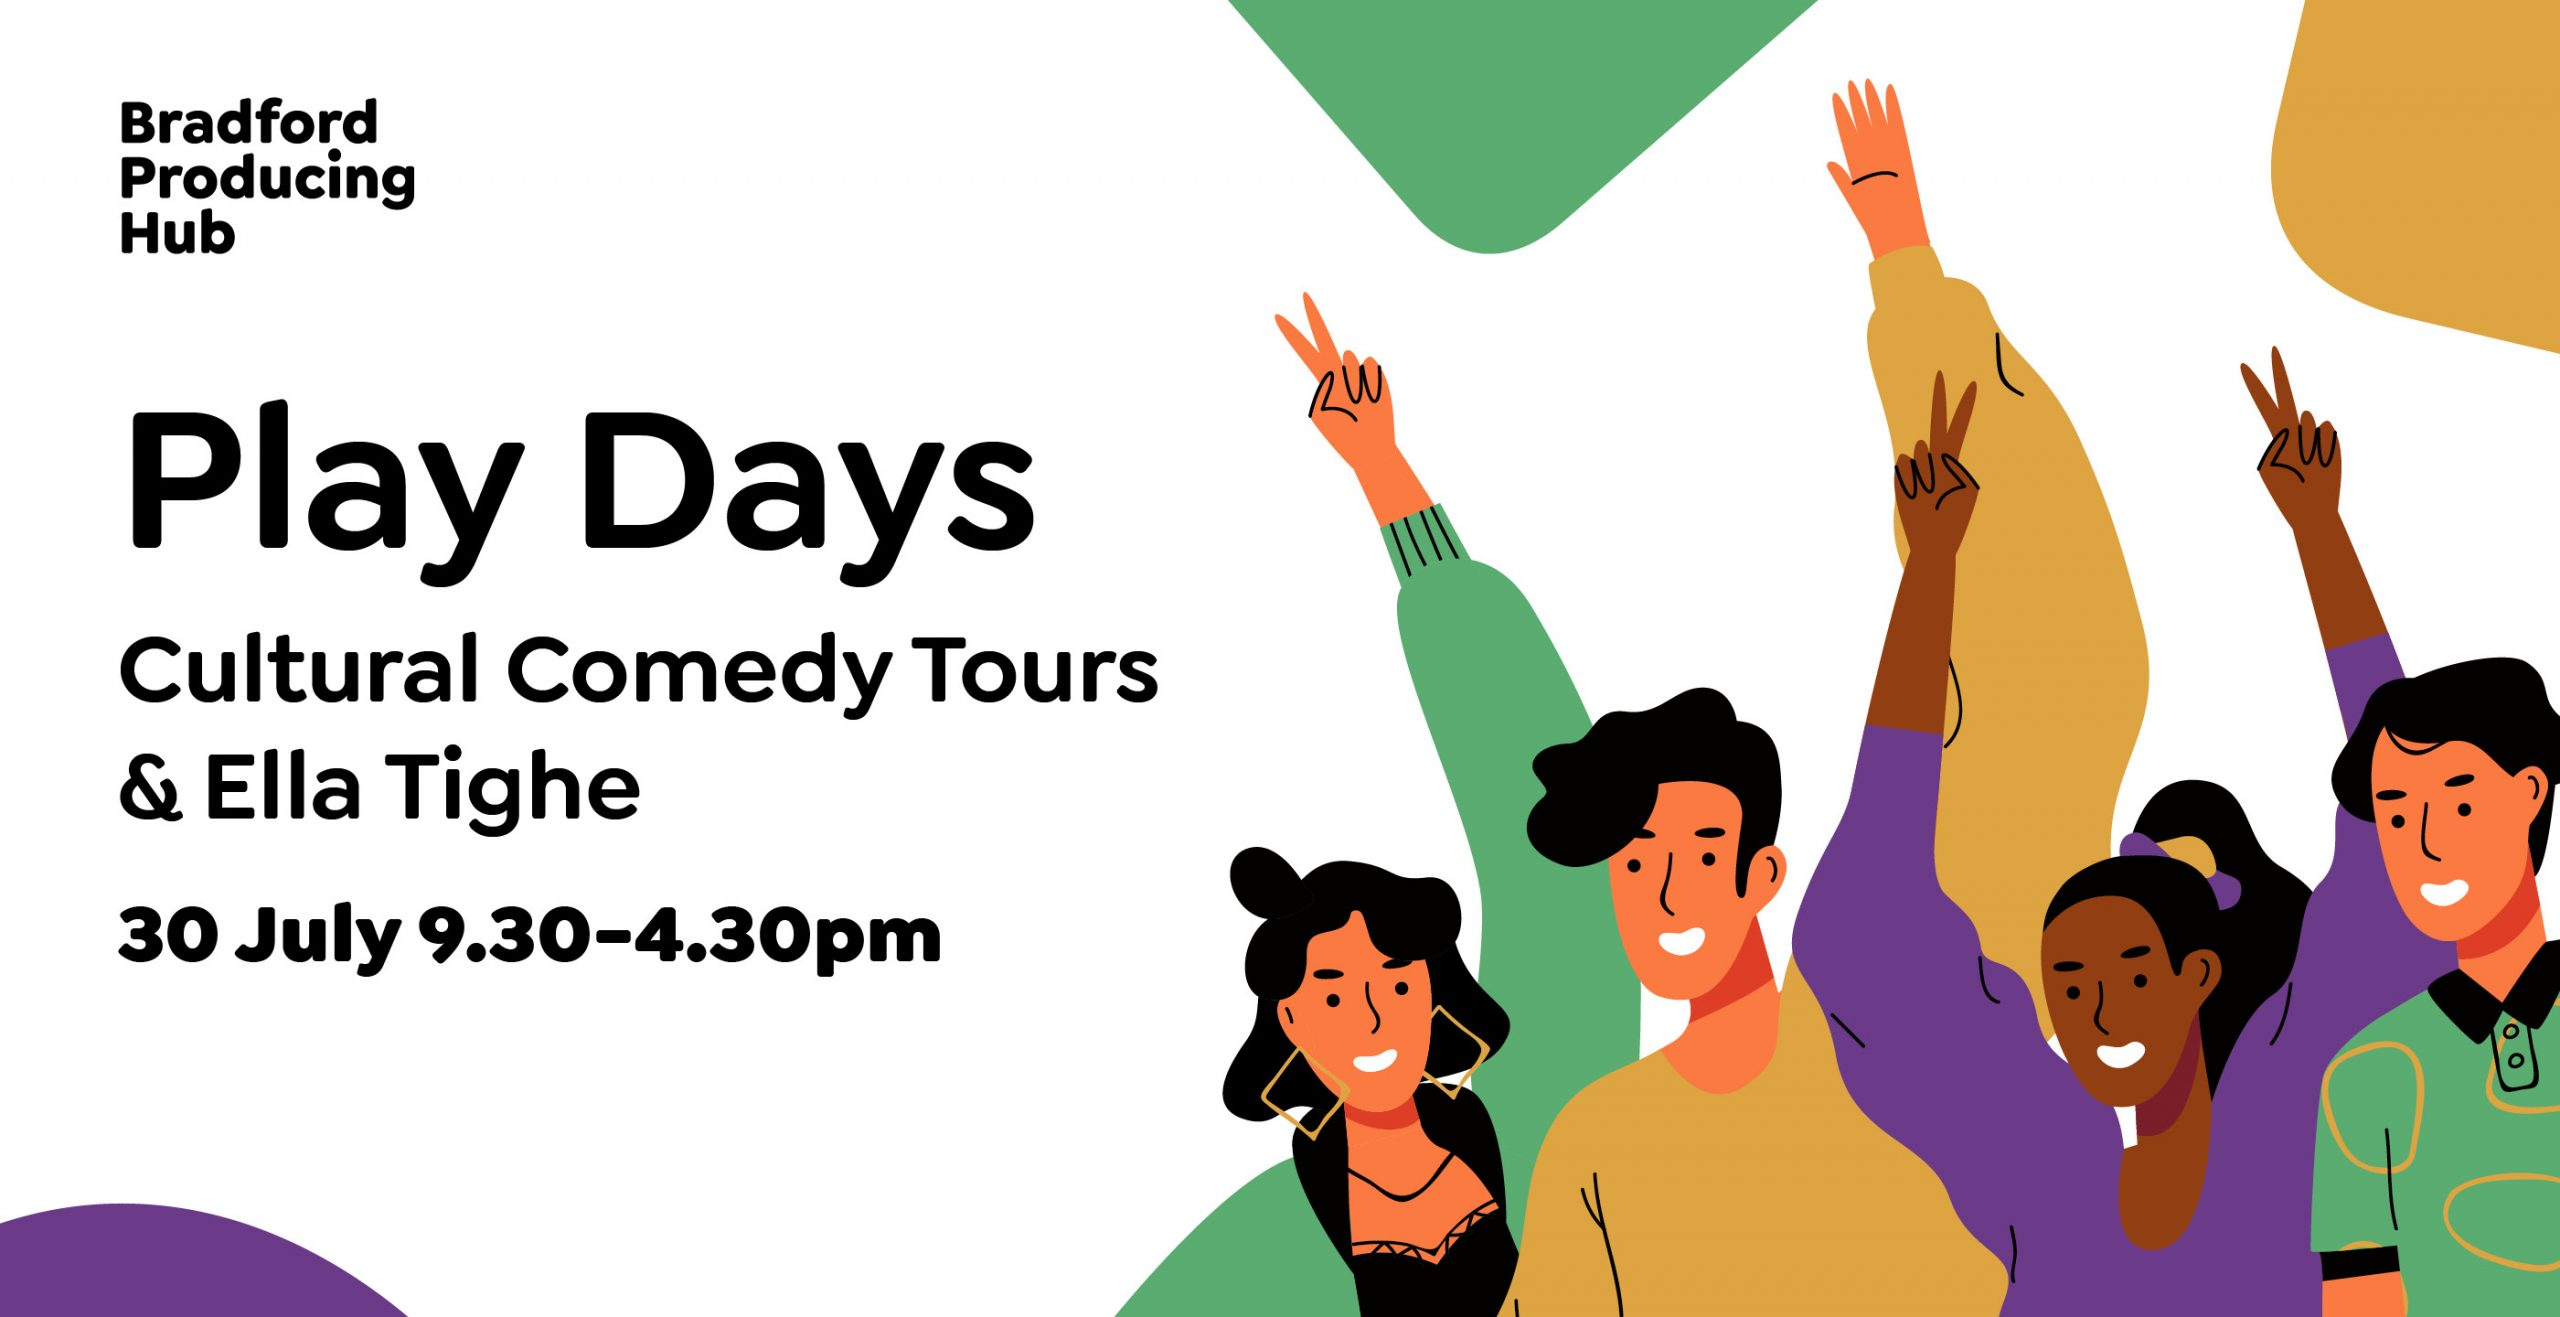 Plays Days with Cultural Comedy Tours and Ella Tighe